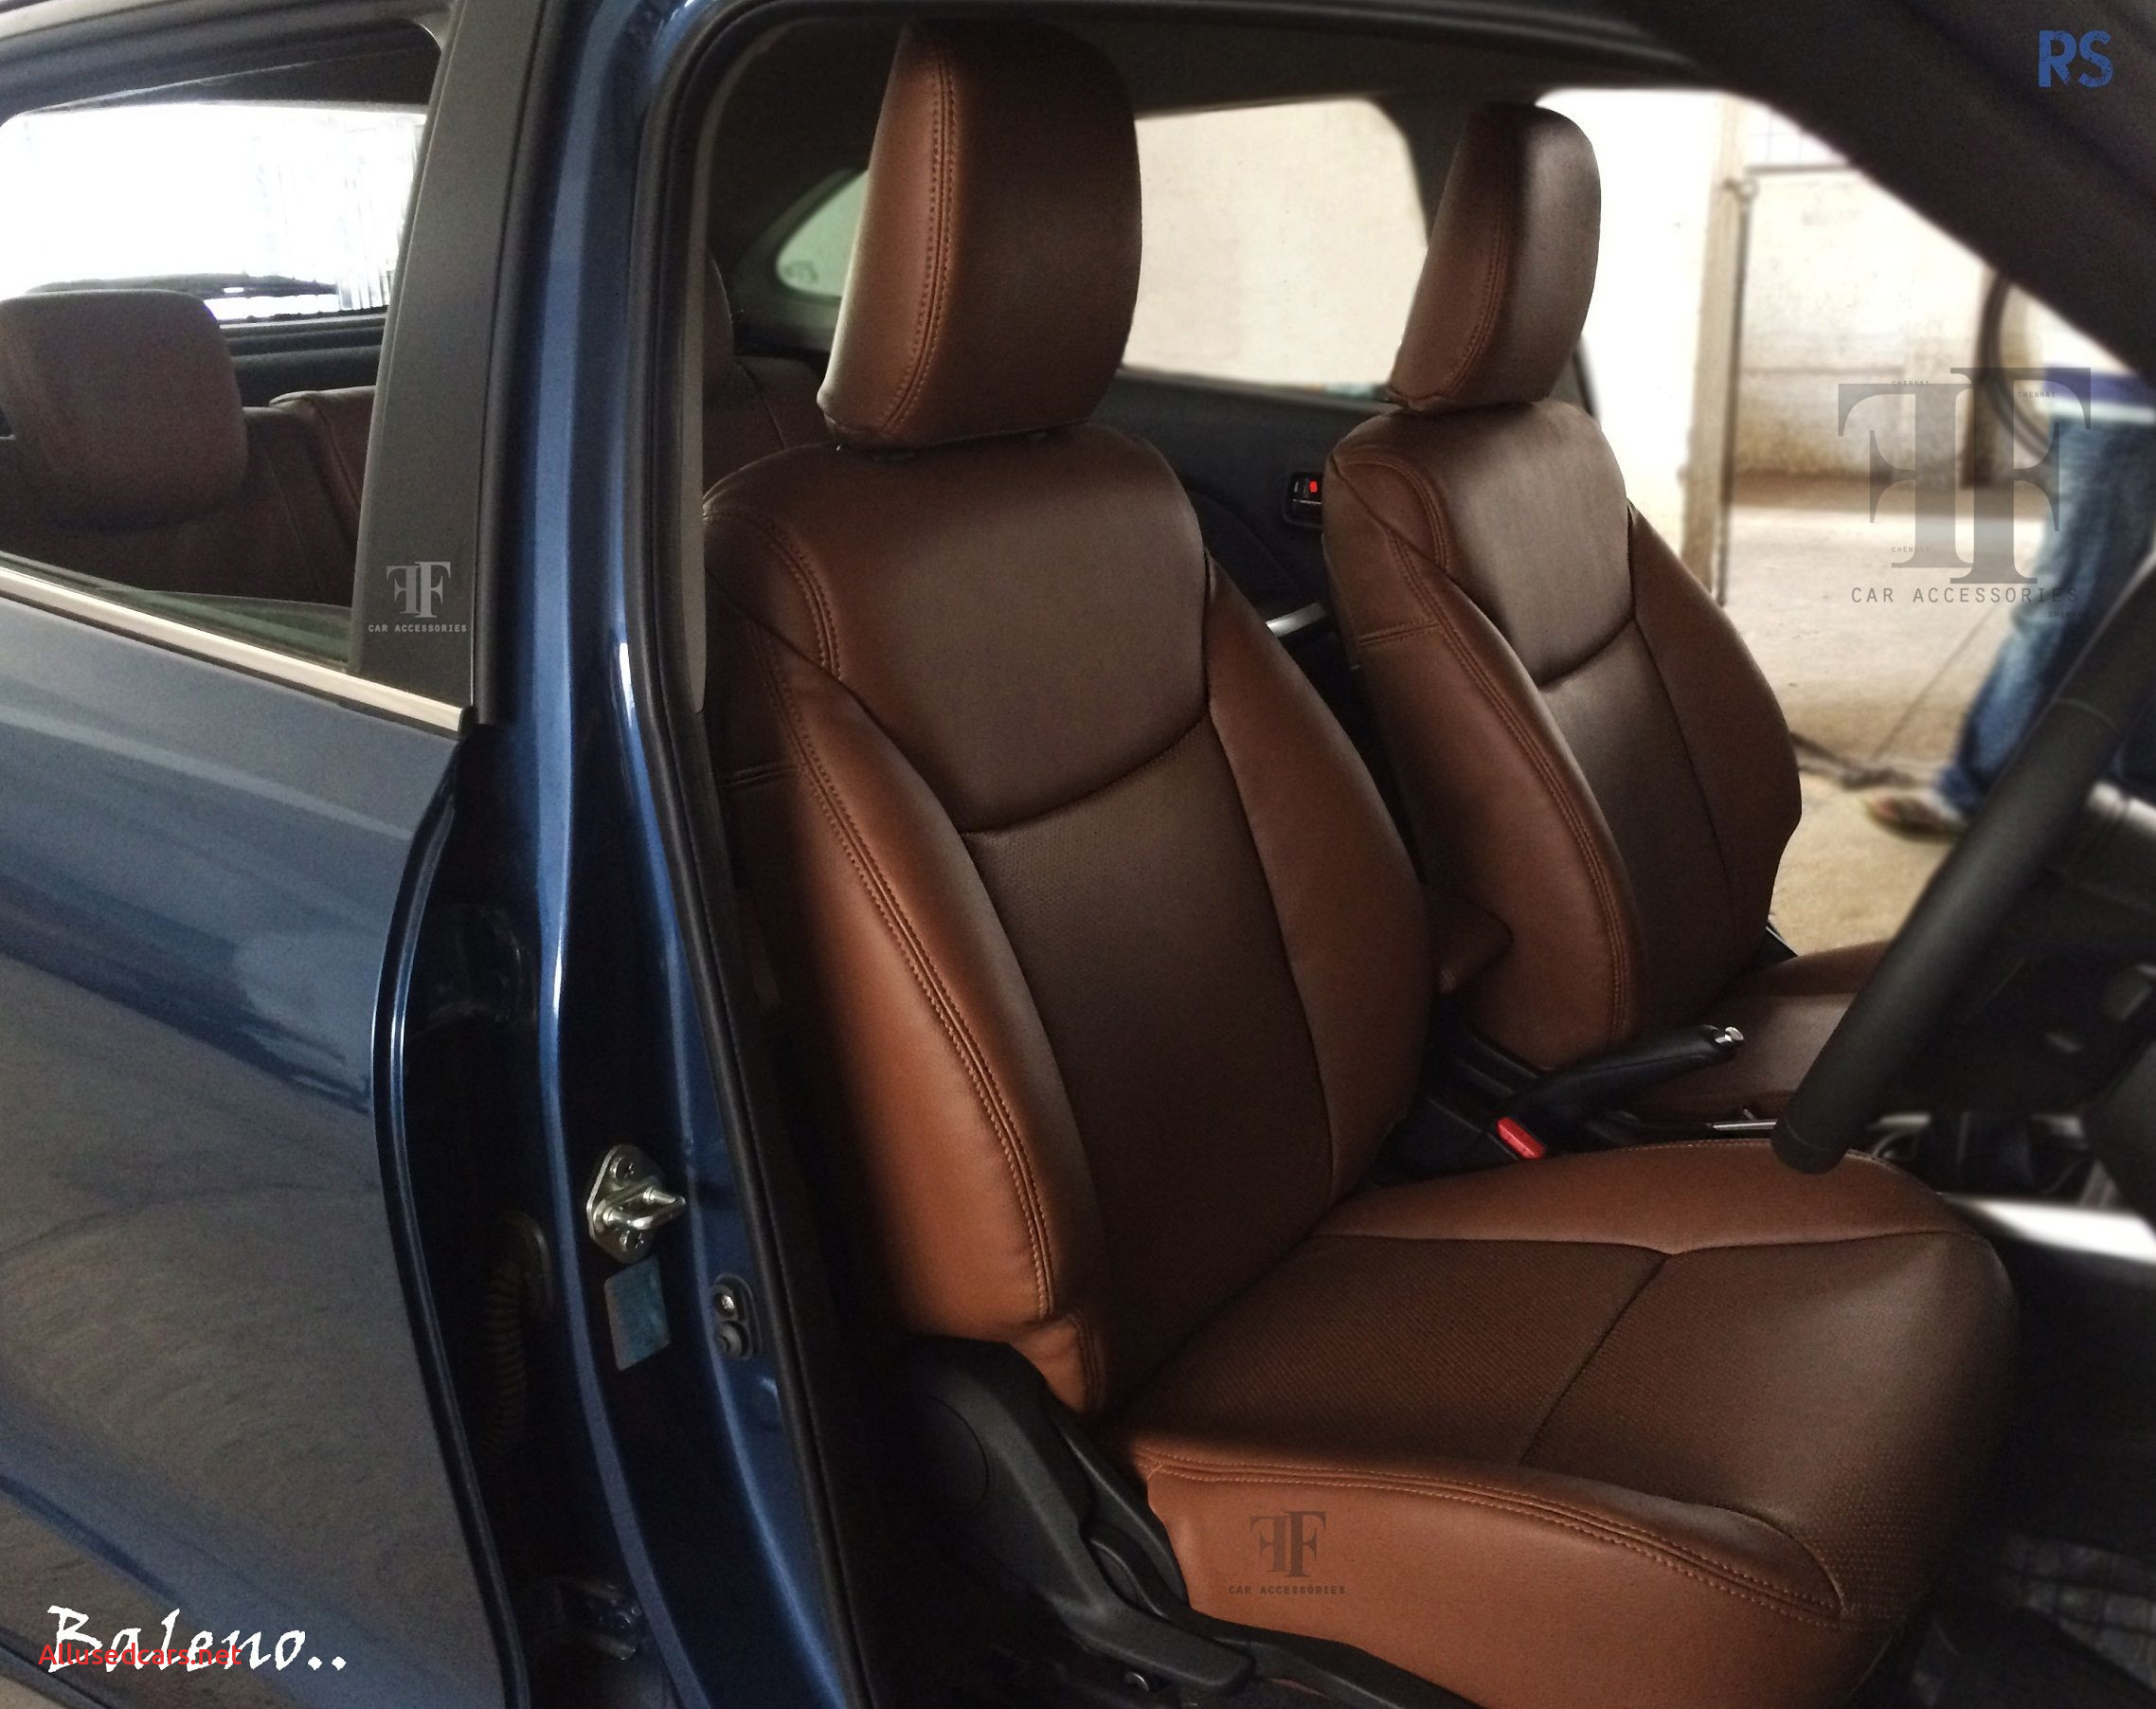 Used Cars for Sale In Chennai Unique We Bined Fine Automotive Leather and Pu Material for This